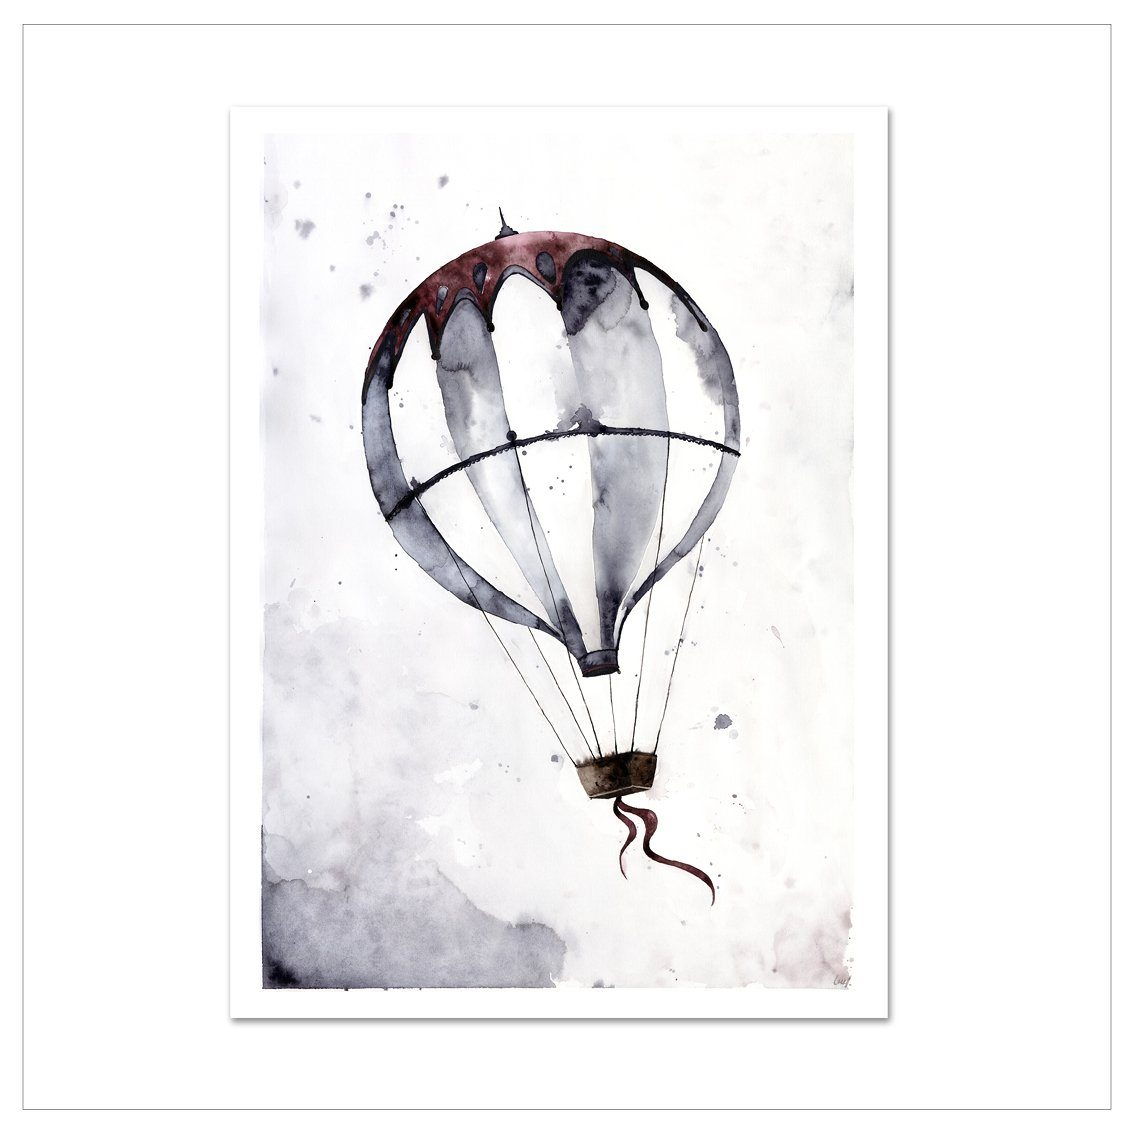 Kunstdruck - FLYING BALLOON Kunstdruck Leo la Douce